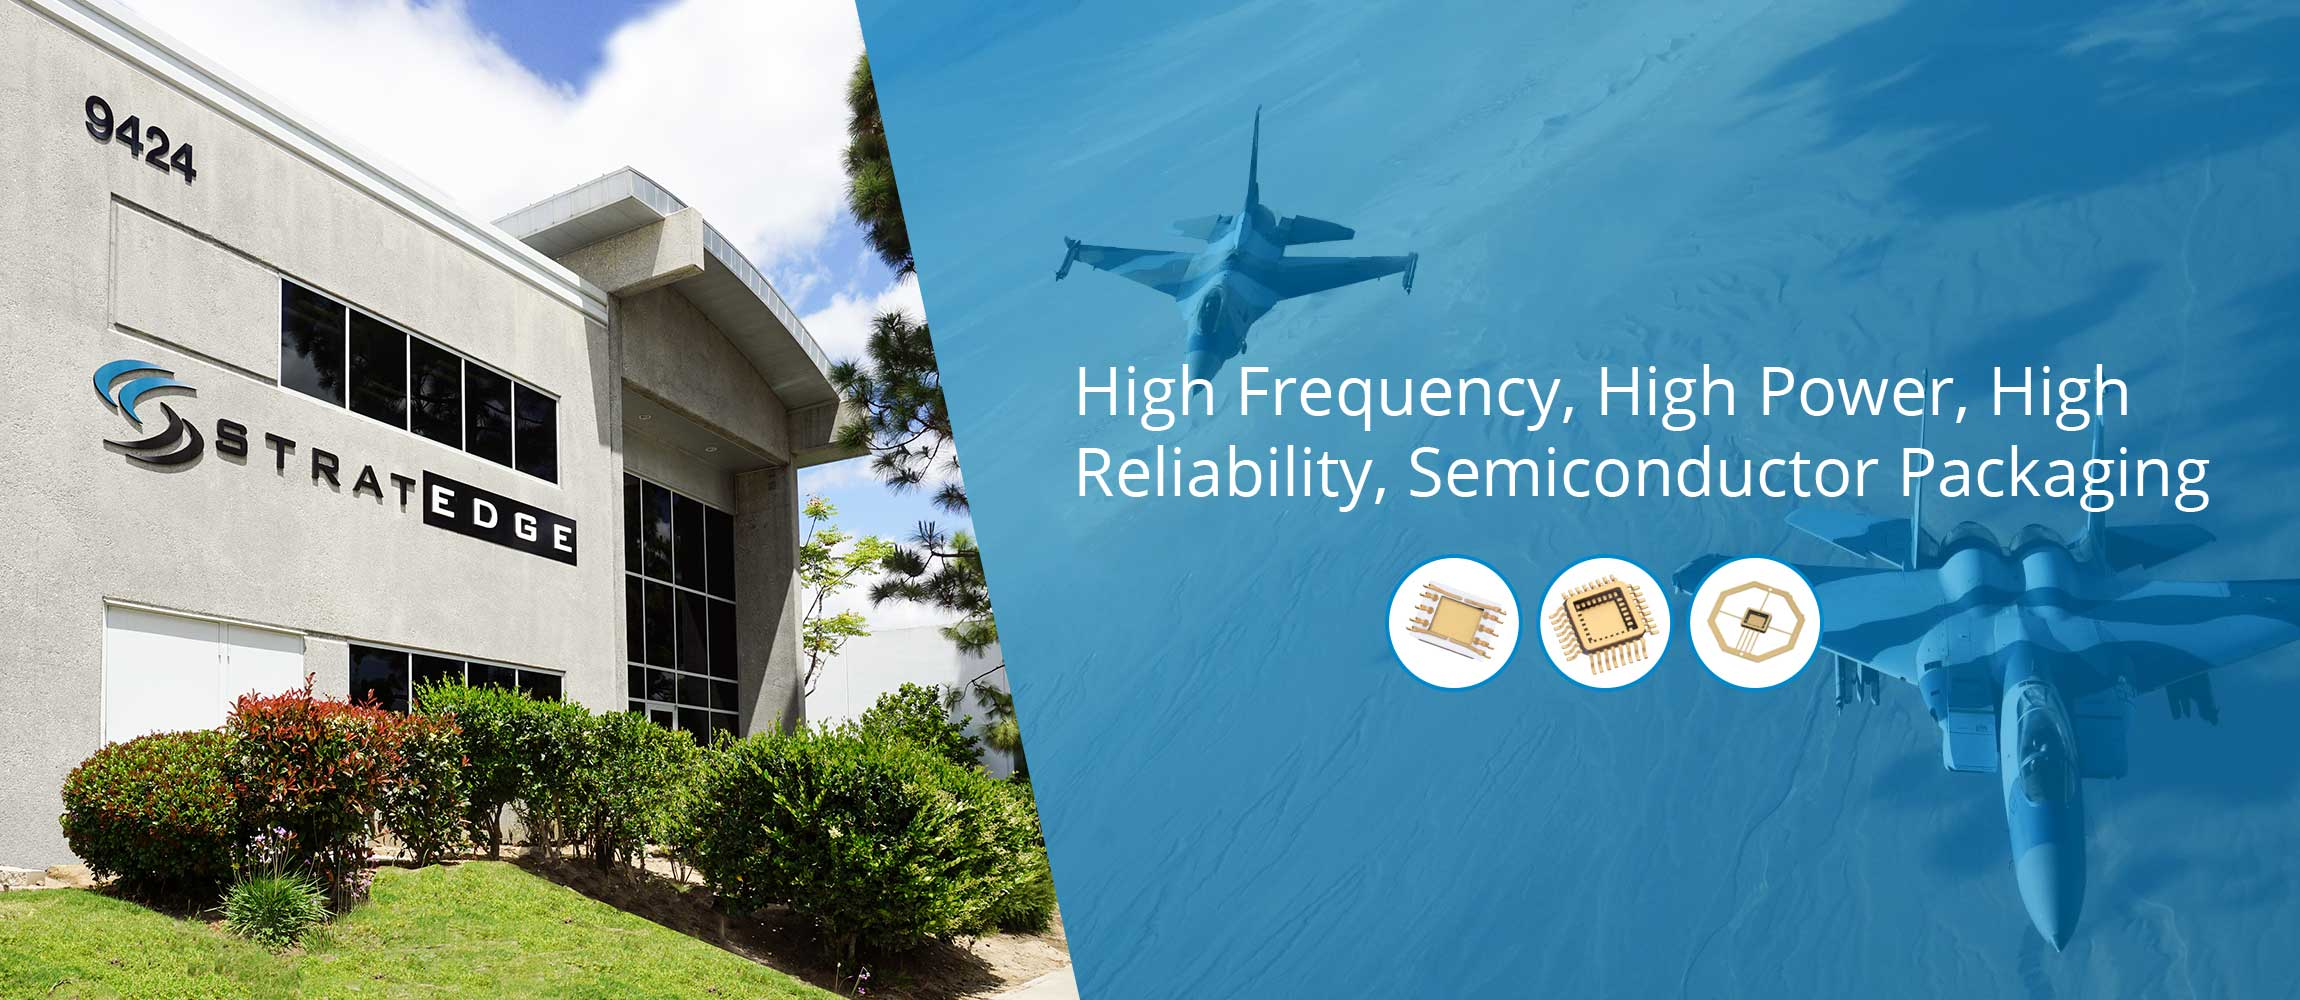 Semiconductor Manufacturing, Packaging & High Frequency Packages